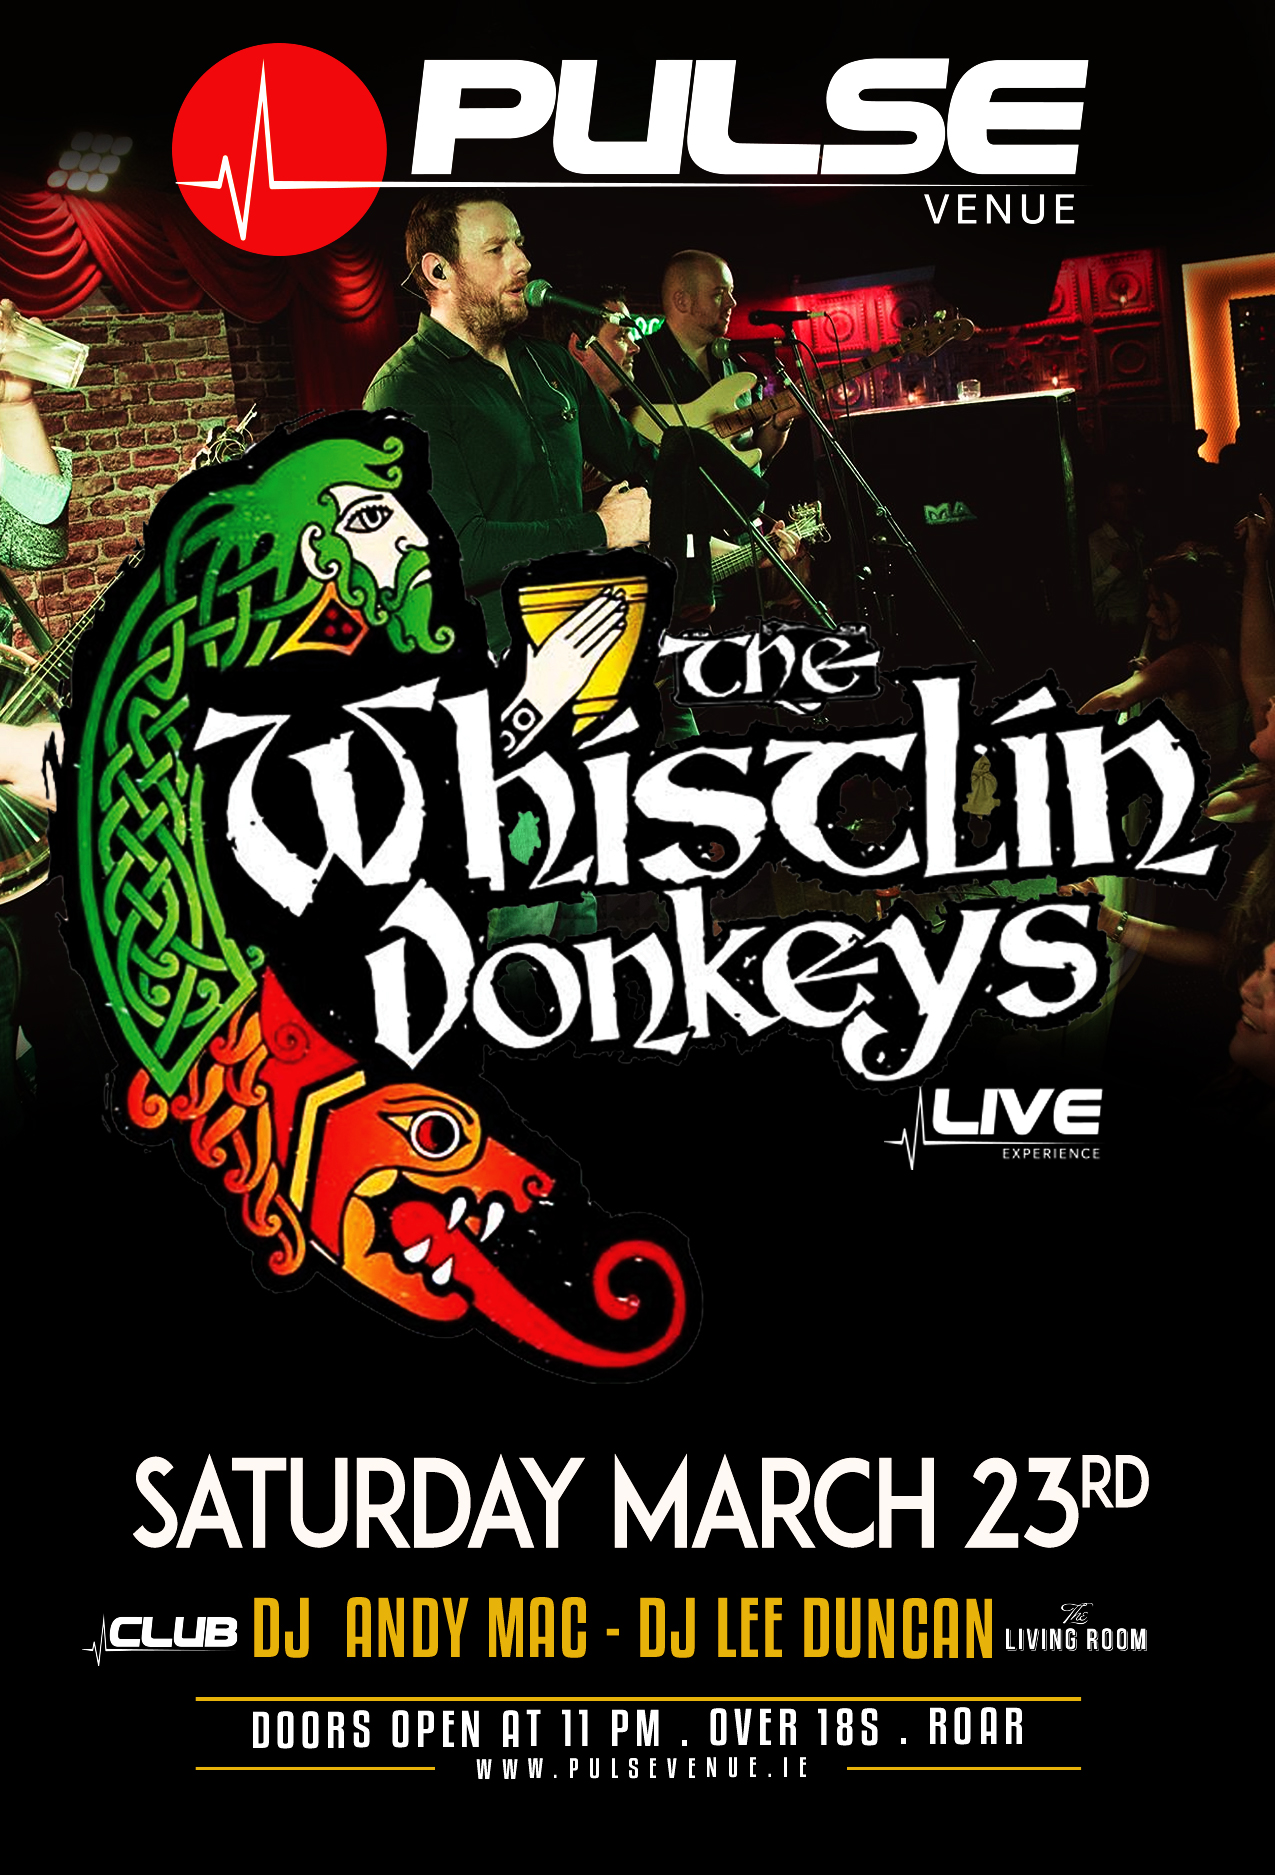 pulse-venue---the-whisltin-donkeys---andy-mac-lee-duncan---sat-march-23-2019.jpg